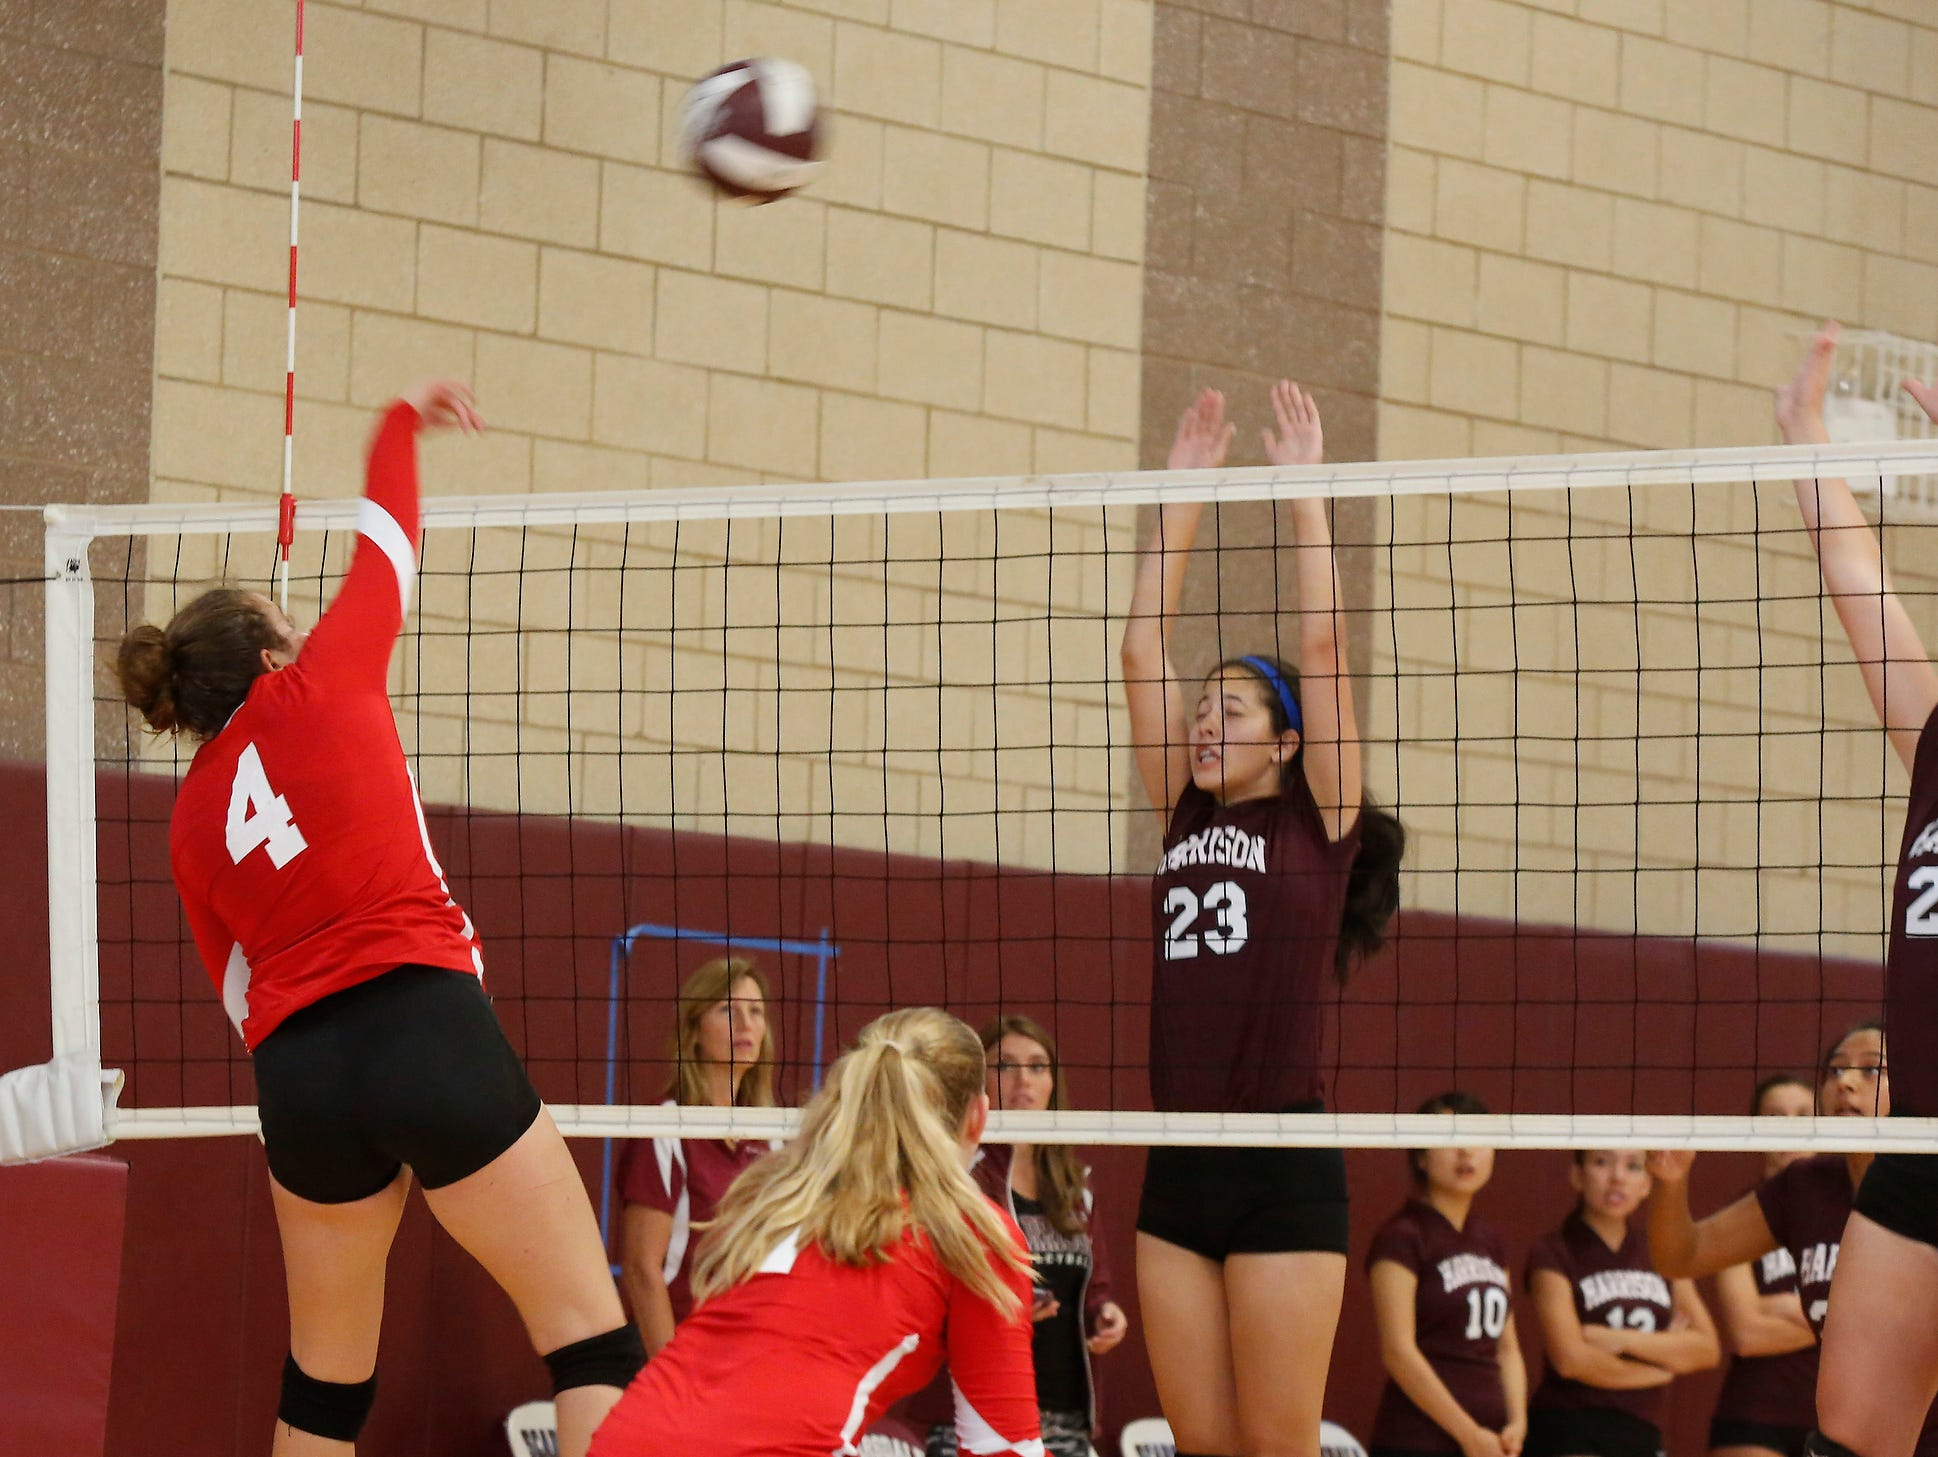 Tappan Zee takes on Harrison during the Scarsdale volleyball tournament at Scarsdale High School on Saturday, September 17, 2016.